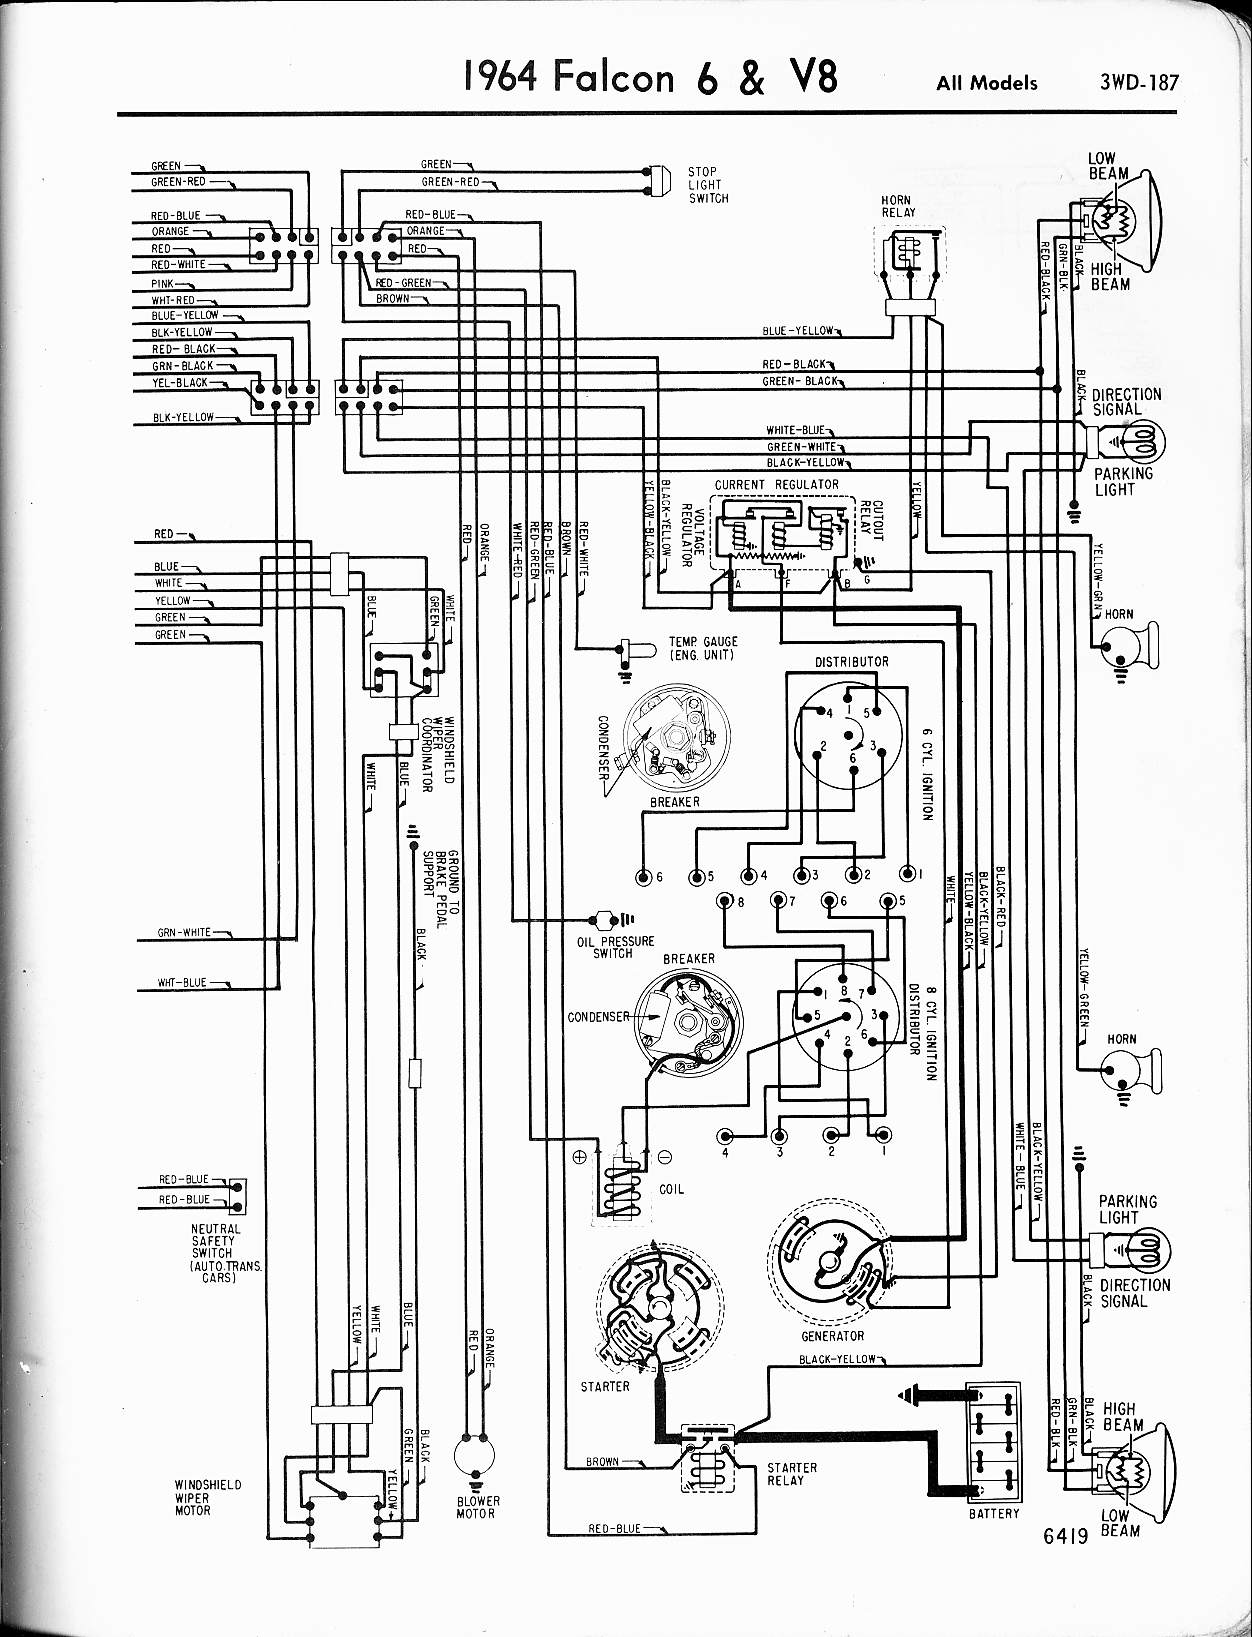 MWire5765 187 1964 falcon wiring help needed ford muscle forums ford 63 falcon wiring diagram at reclaimingppi.co